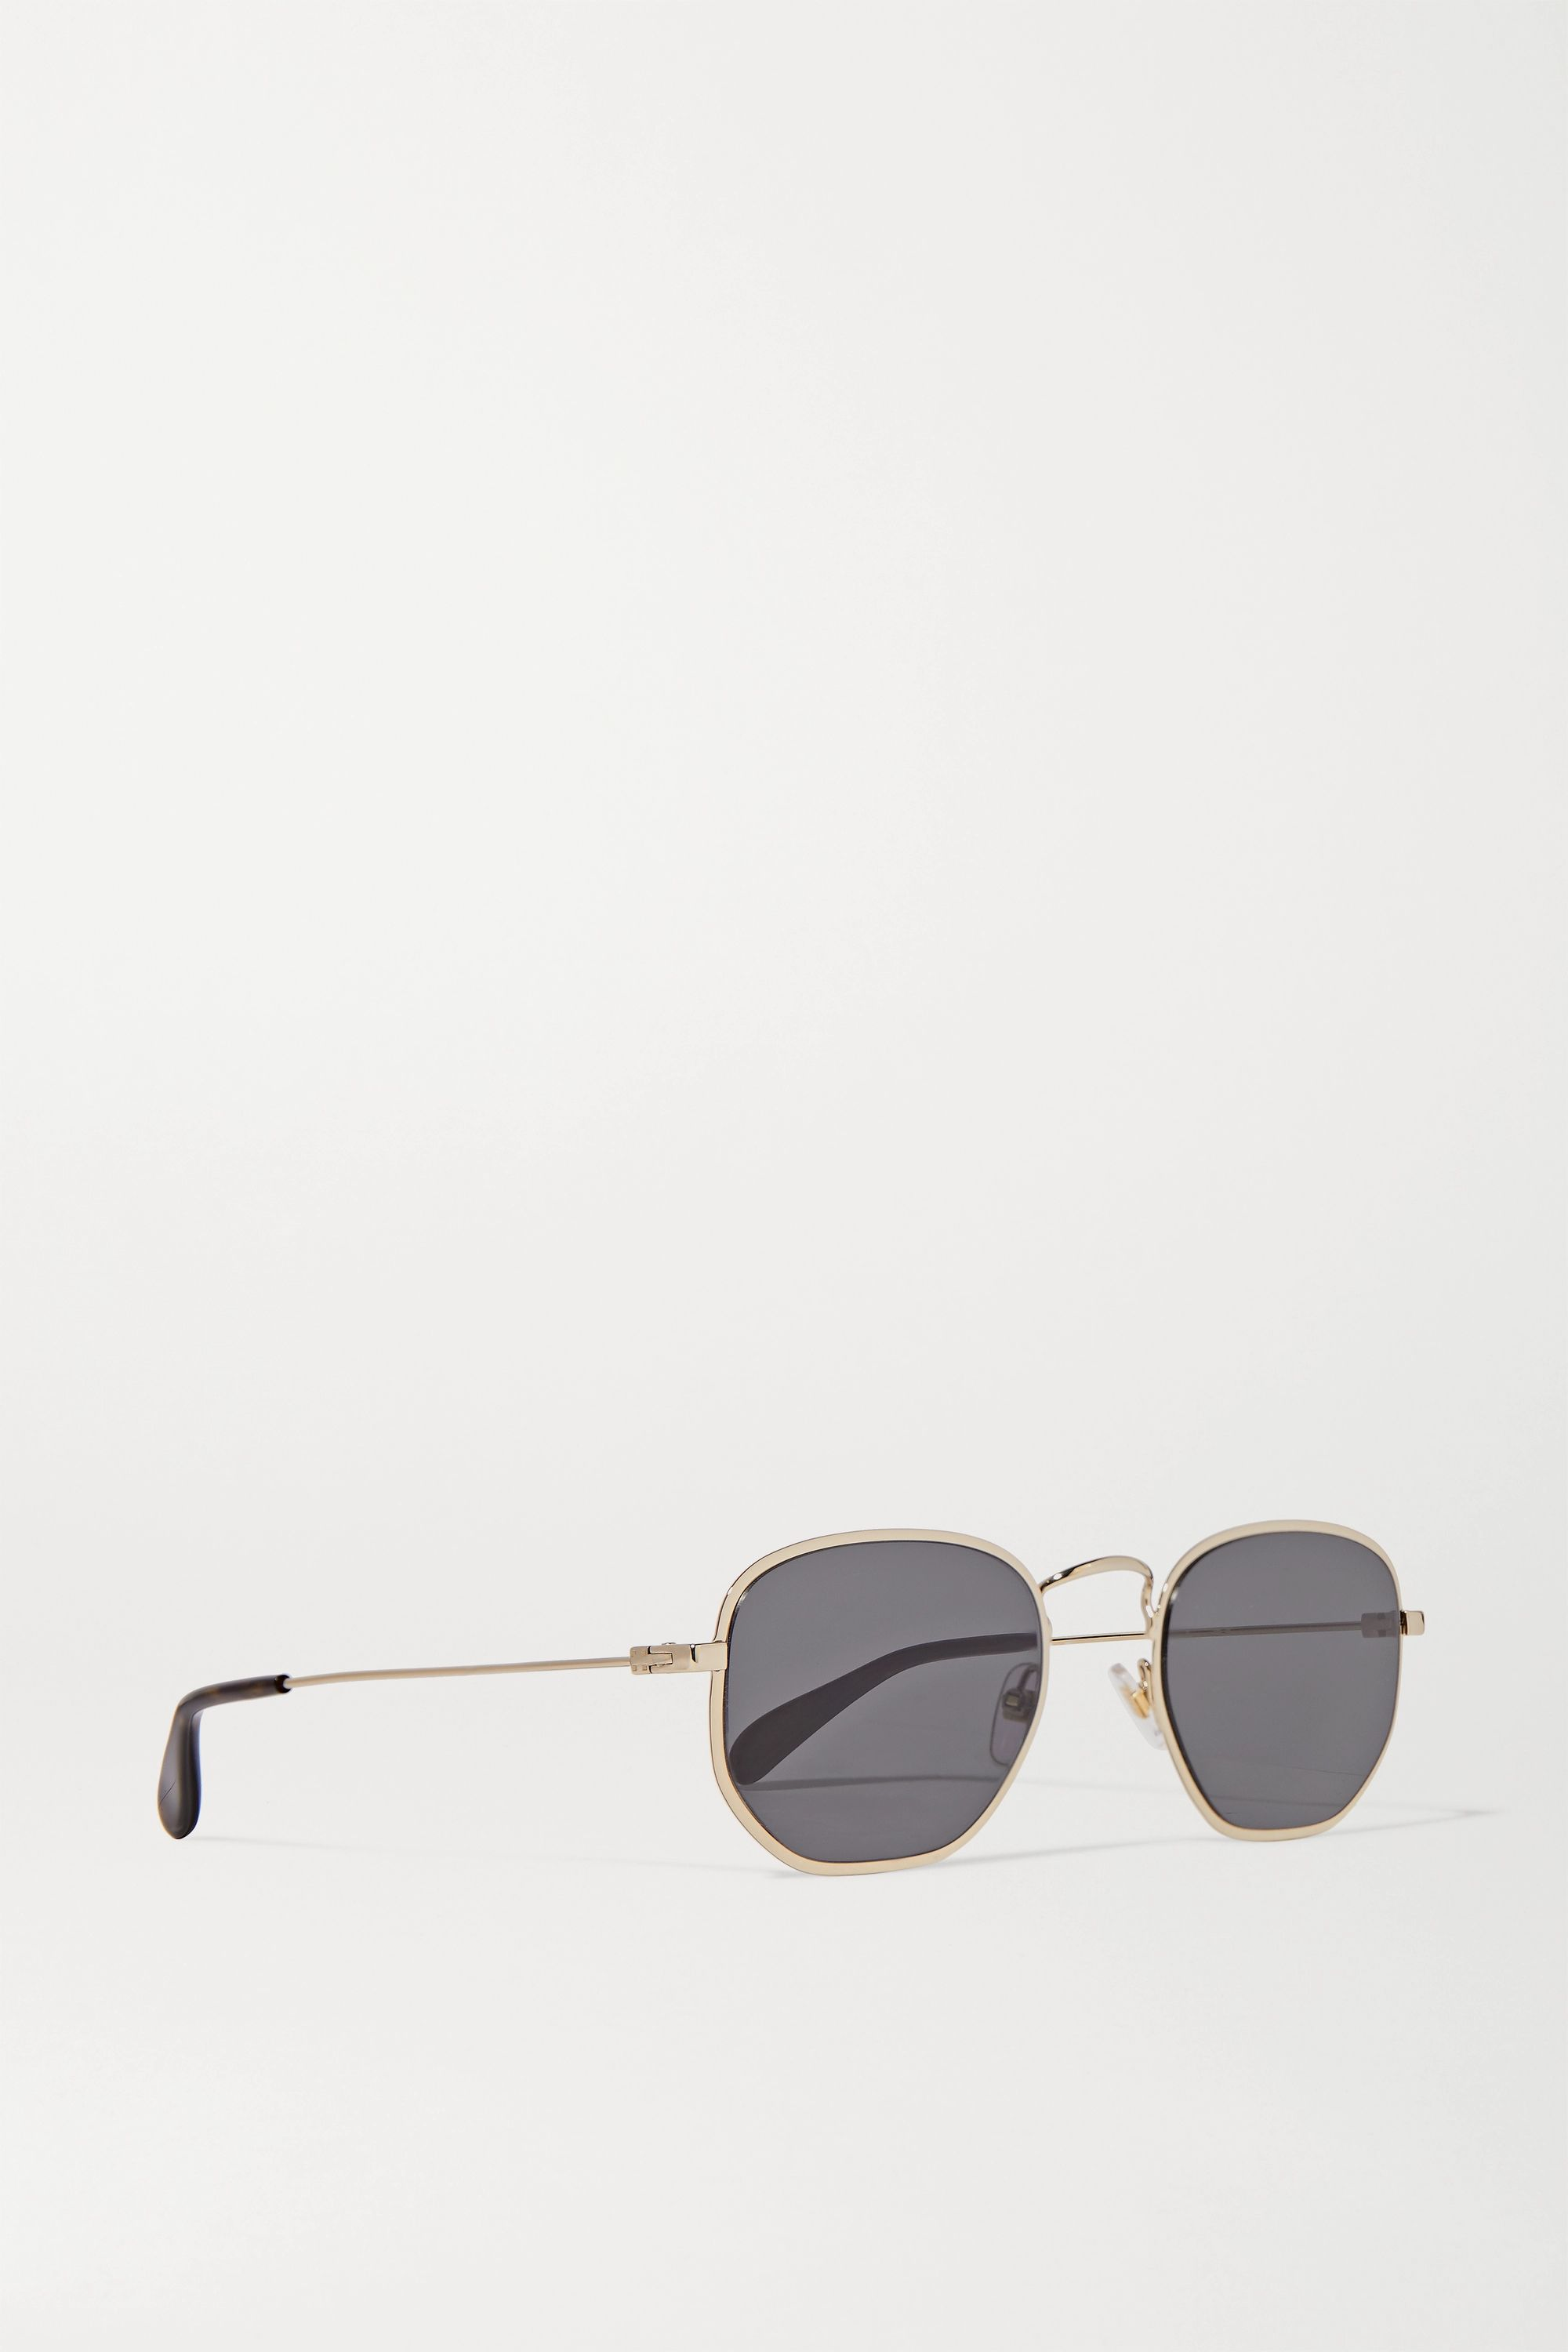 Givenchy Square-frame gold-tone and tortoiseshell acetate sunglasses